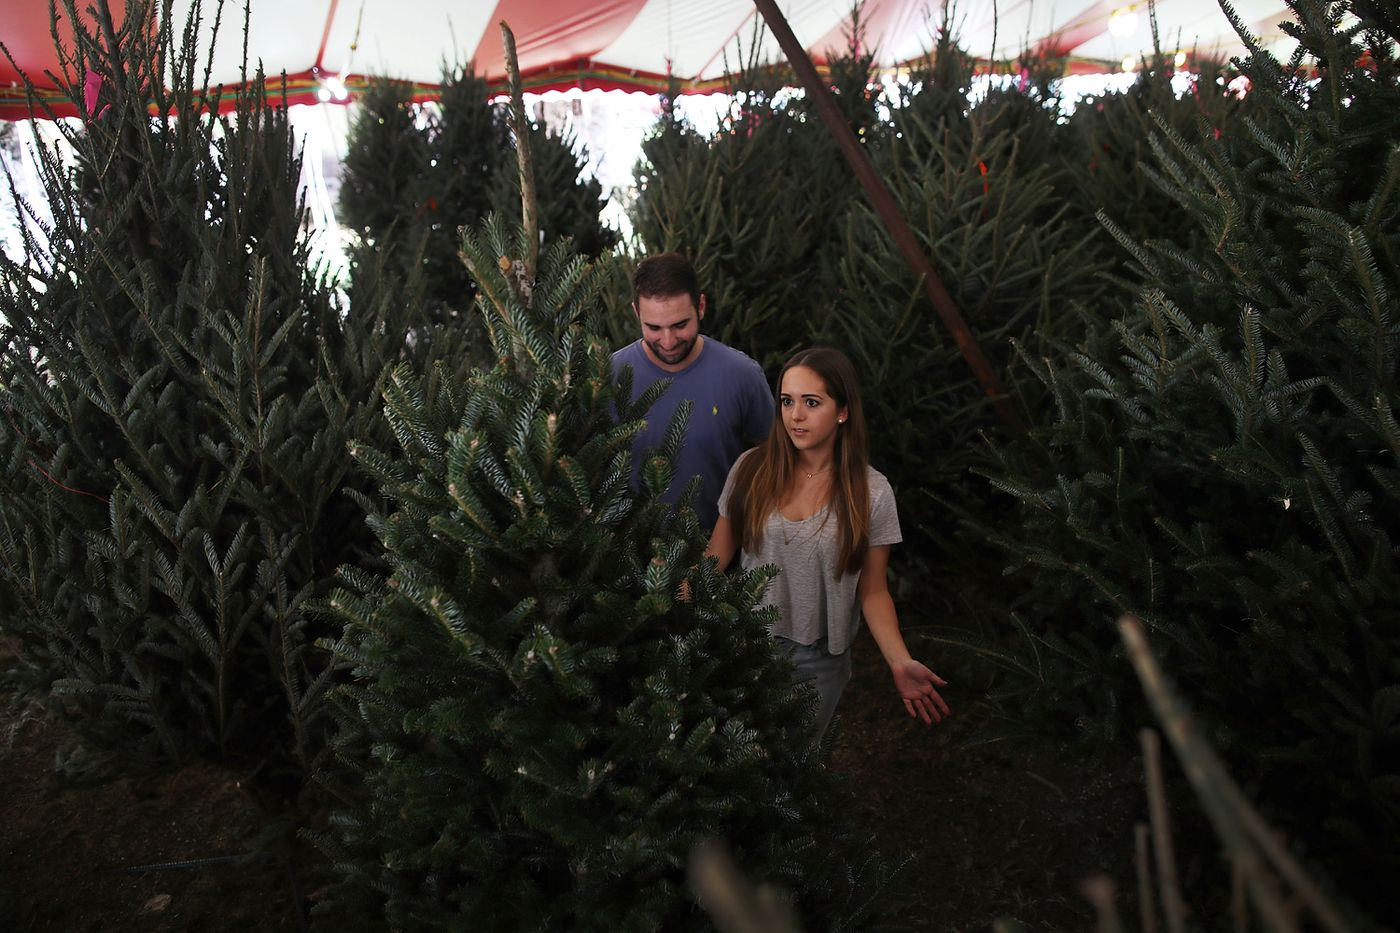 Elgin Christmas Tree Farm.Amazon S Christmas Tree Delivery Service 5 Experts Weigh In